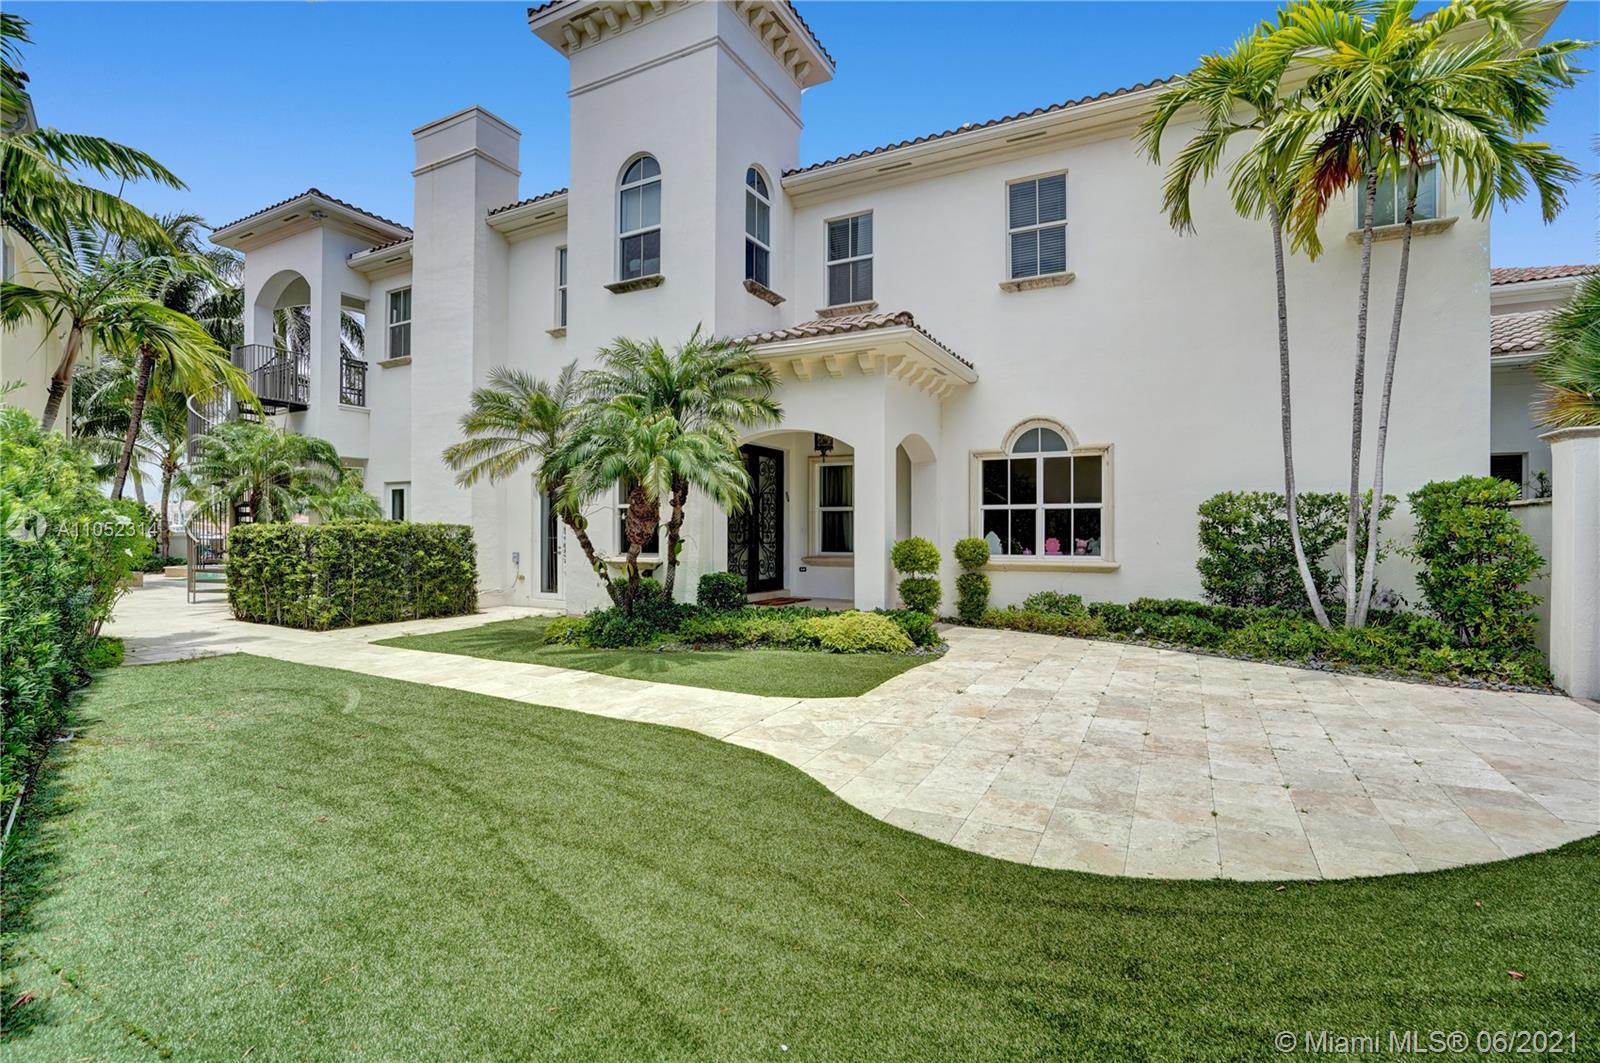 Located in the prestigious gated community of Harbor Islands, this luxury estate has 6 bedrooms each